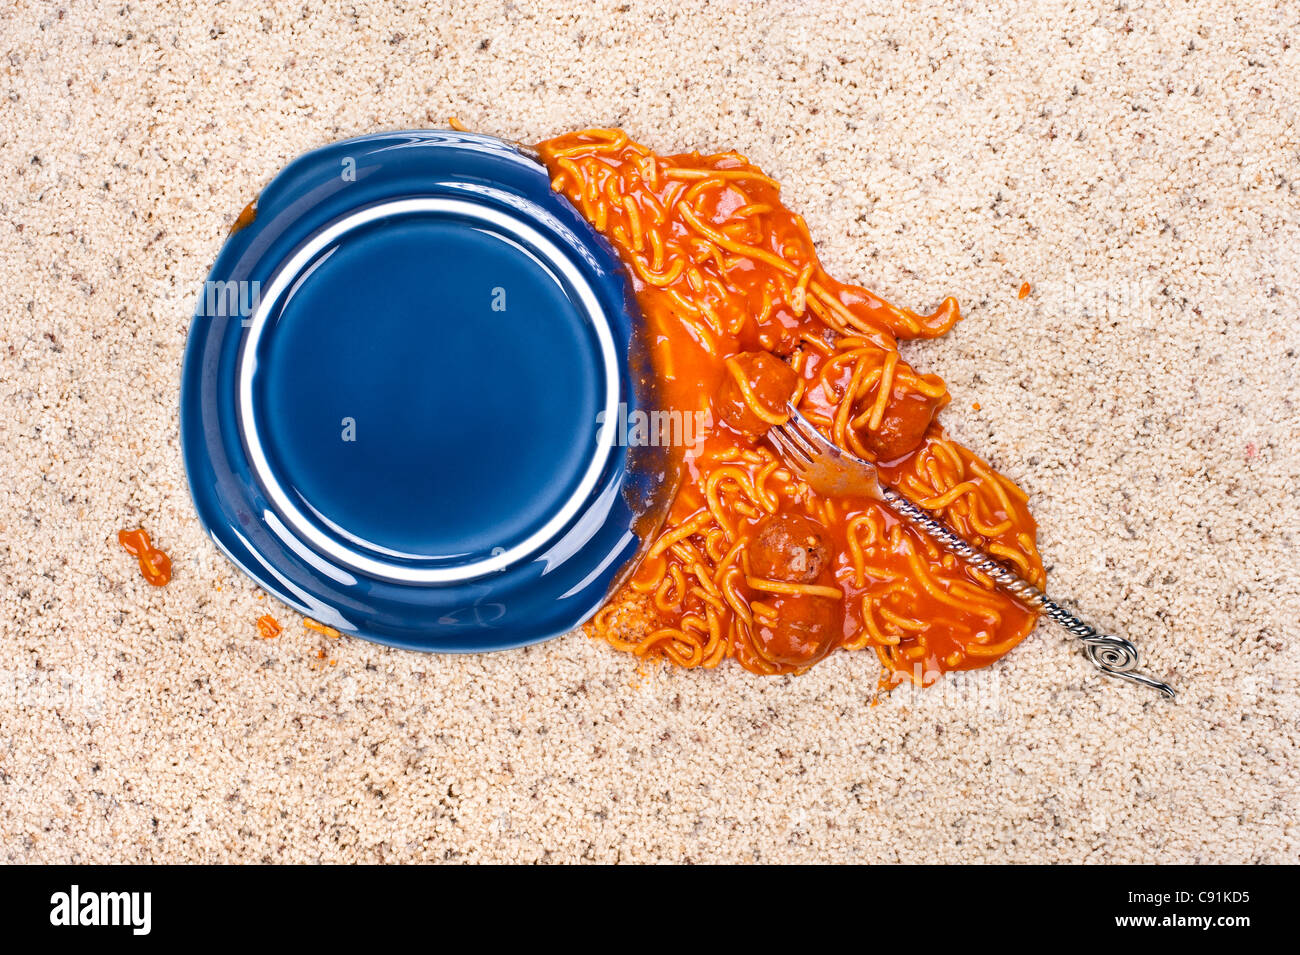 A dropped plate of spaghetti on new carpeting. - Stock Image